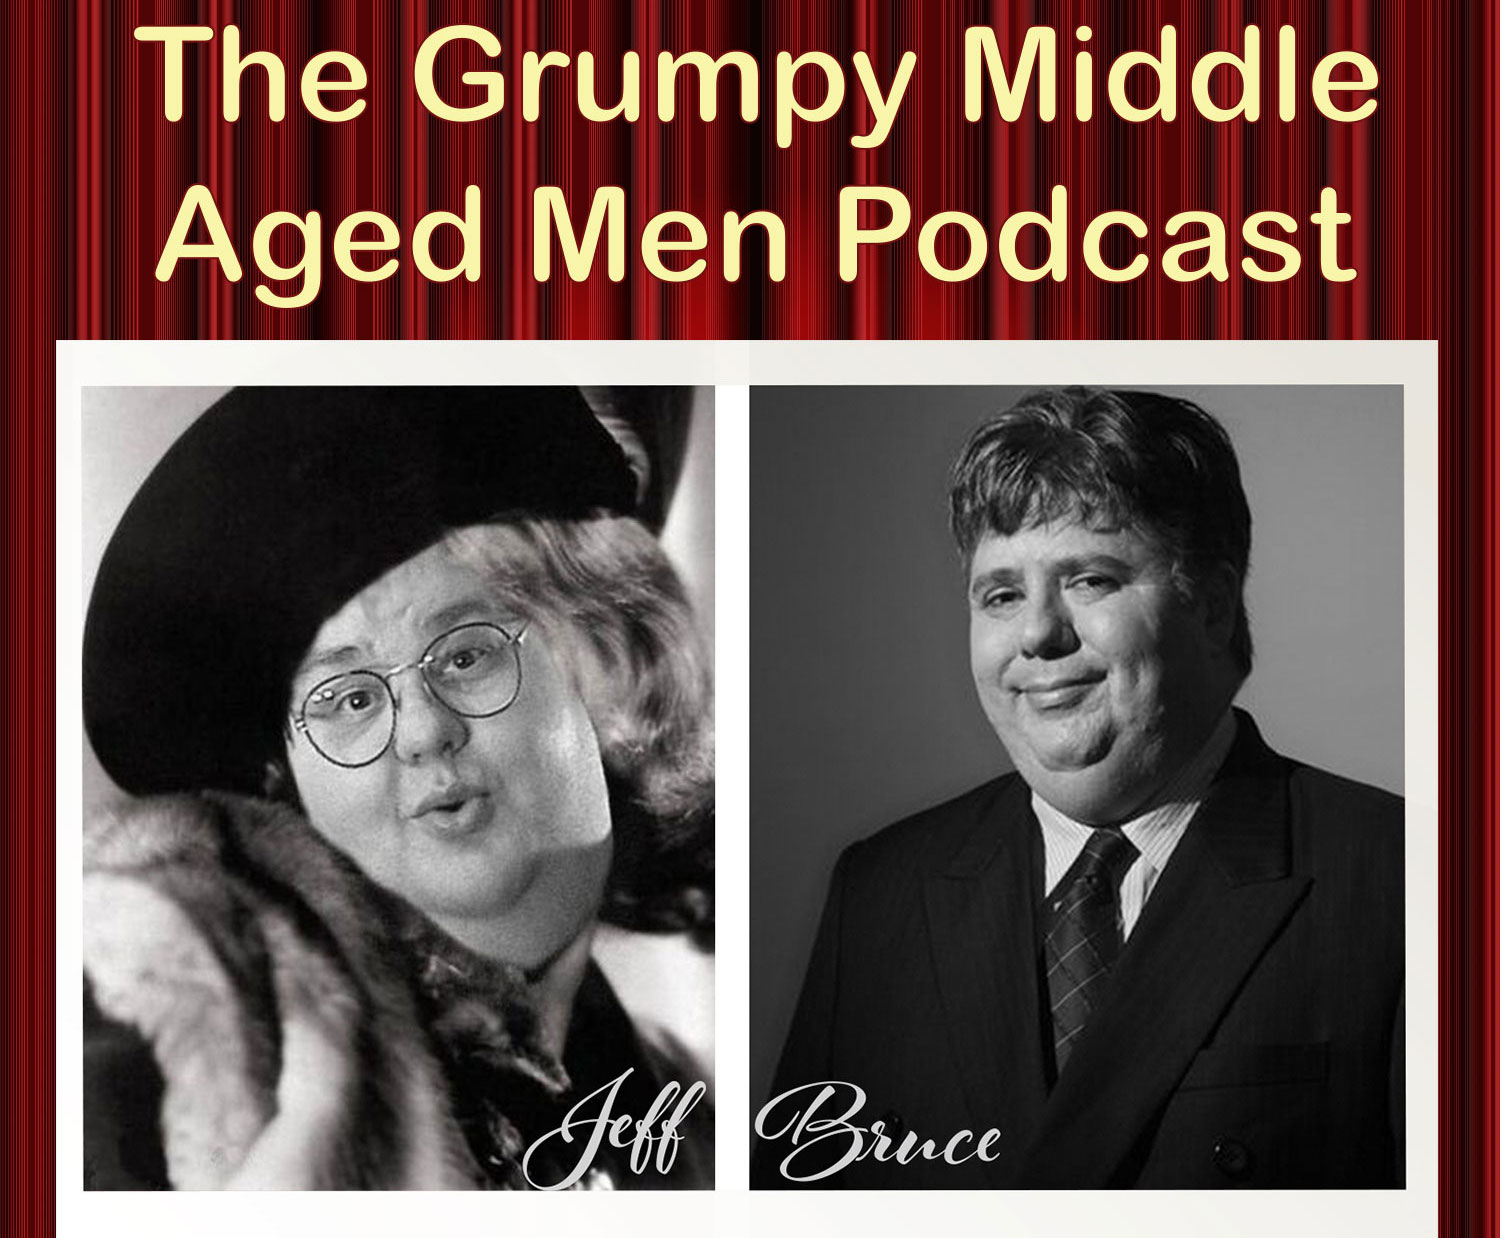 Photo of the Grumpy Middle Aged Men podcast image